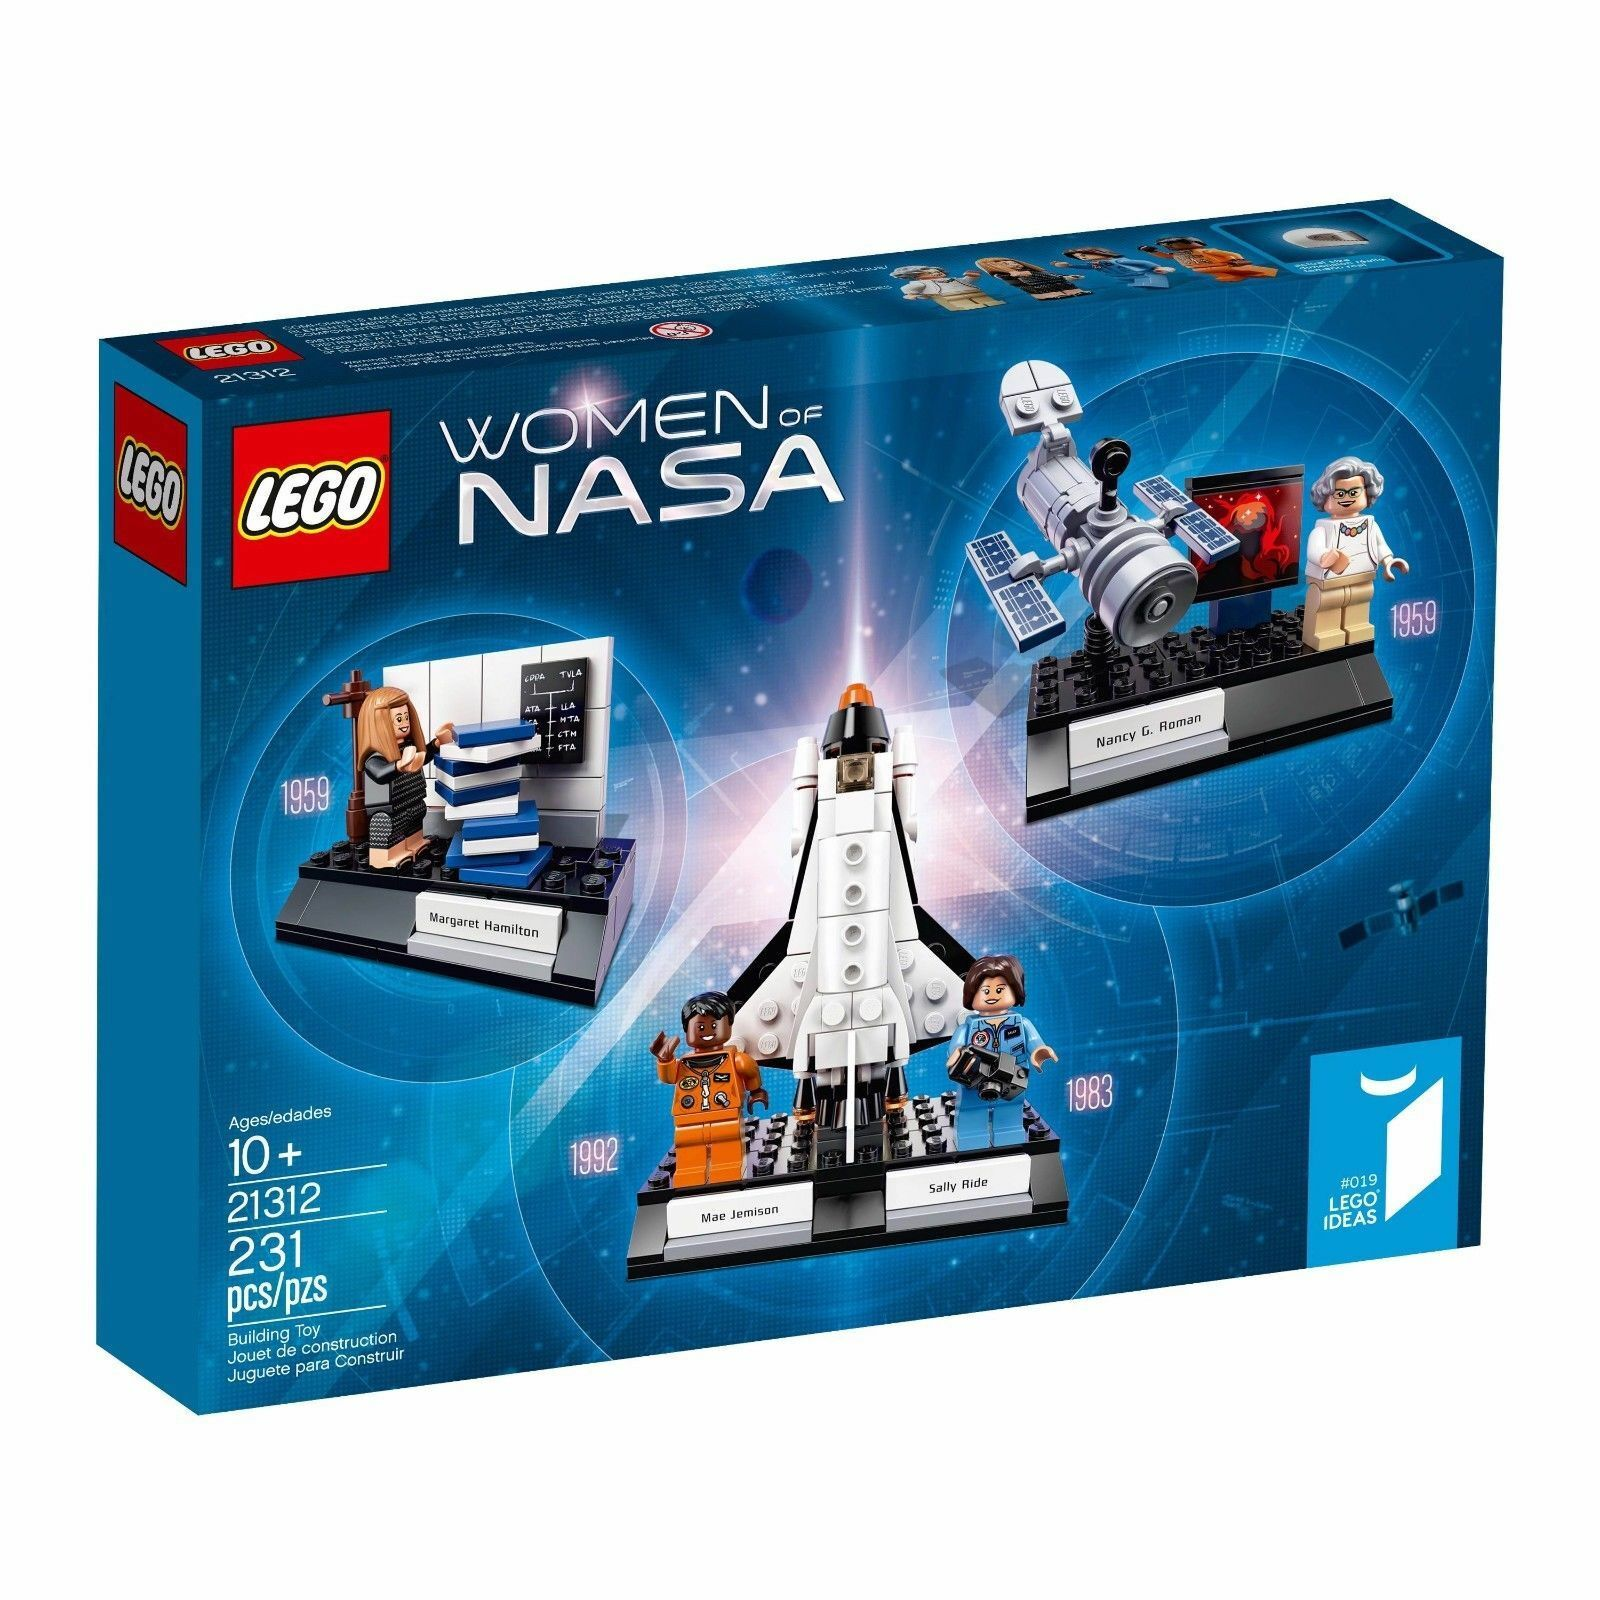 21312 Damen OF NASA city town lego NEW sealed lego set science kit ideas nisb